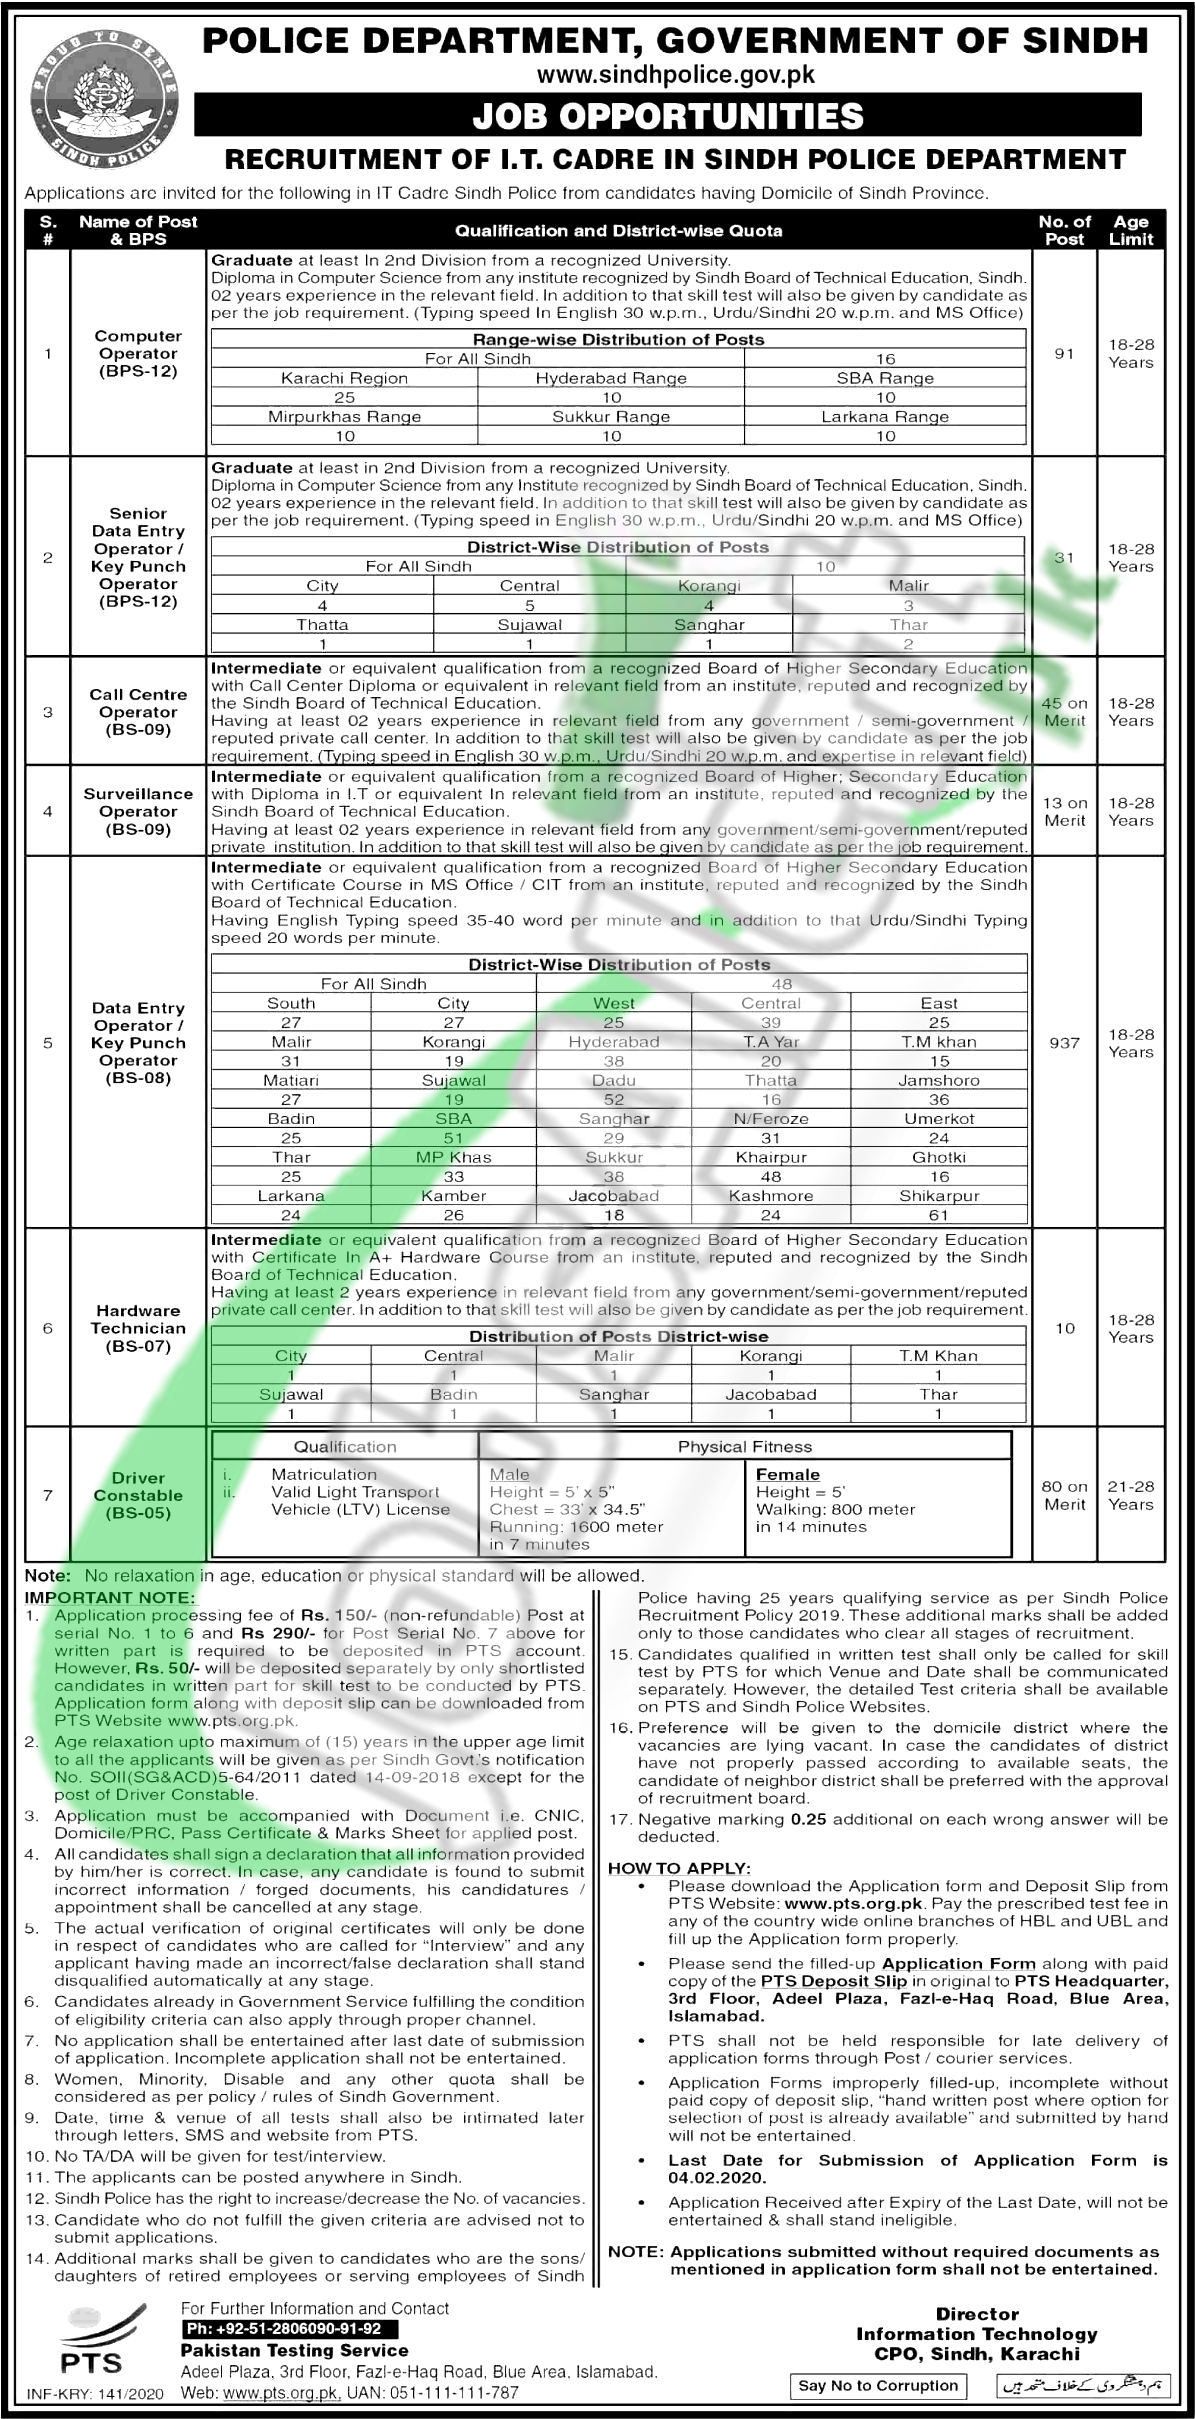 Police Department, Government of Sindh Job Opportunities